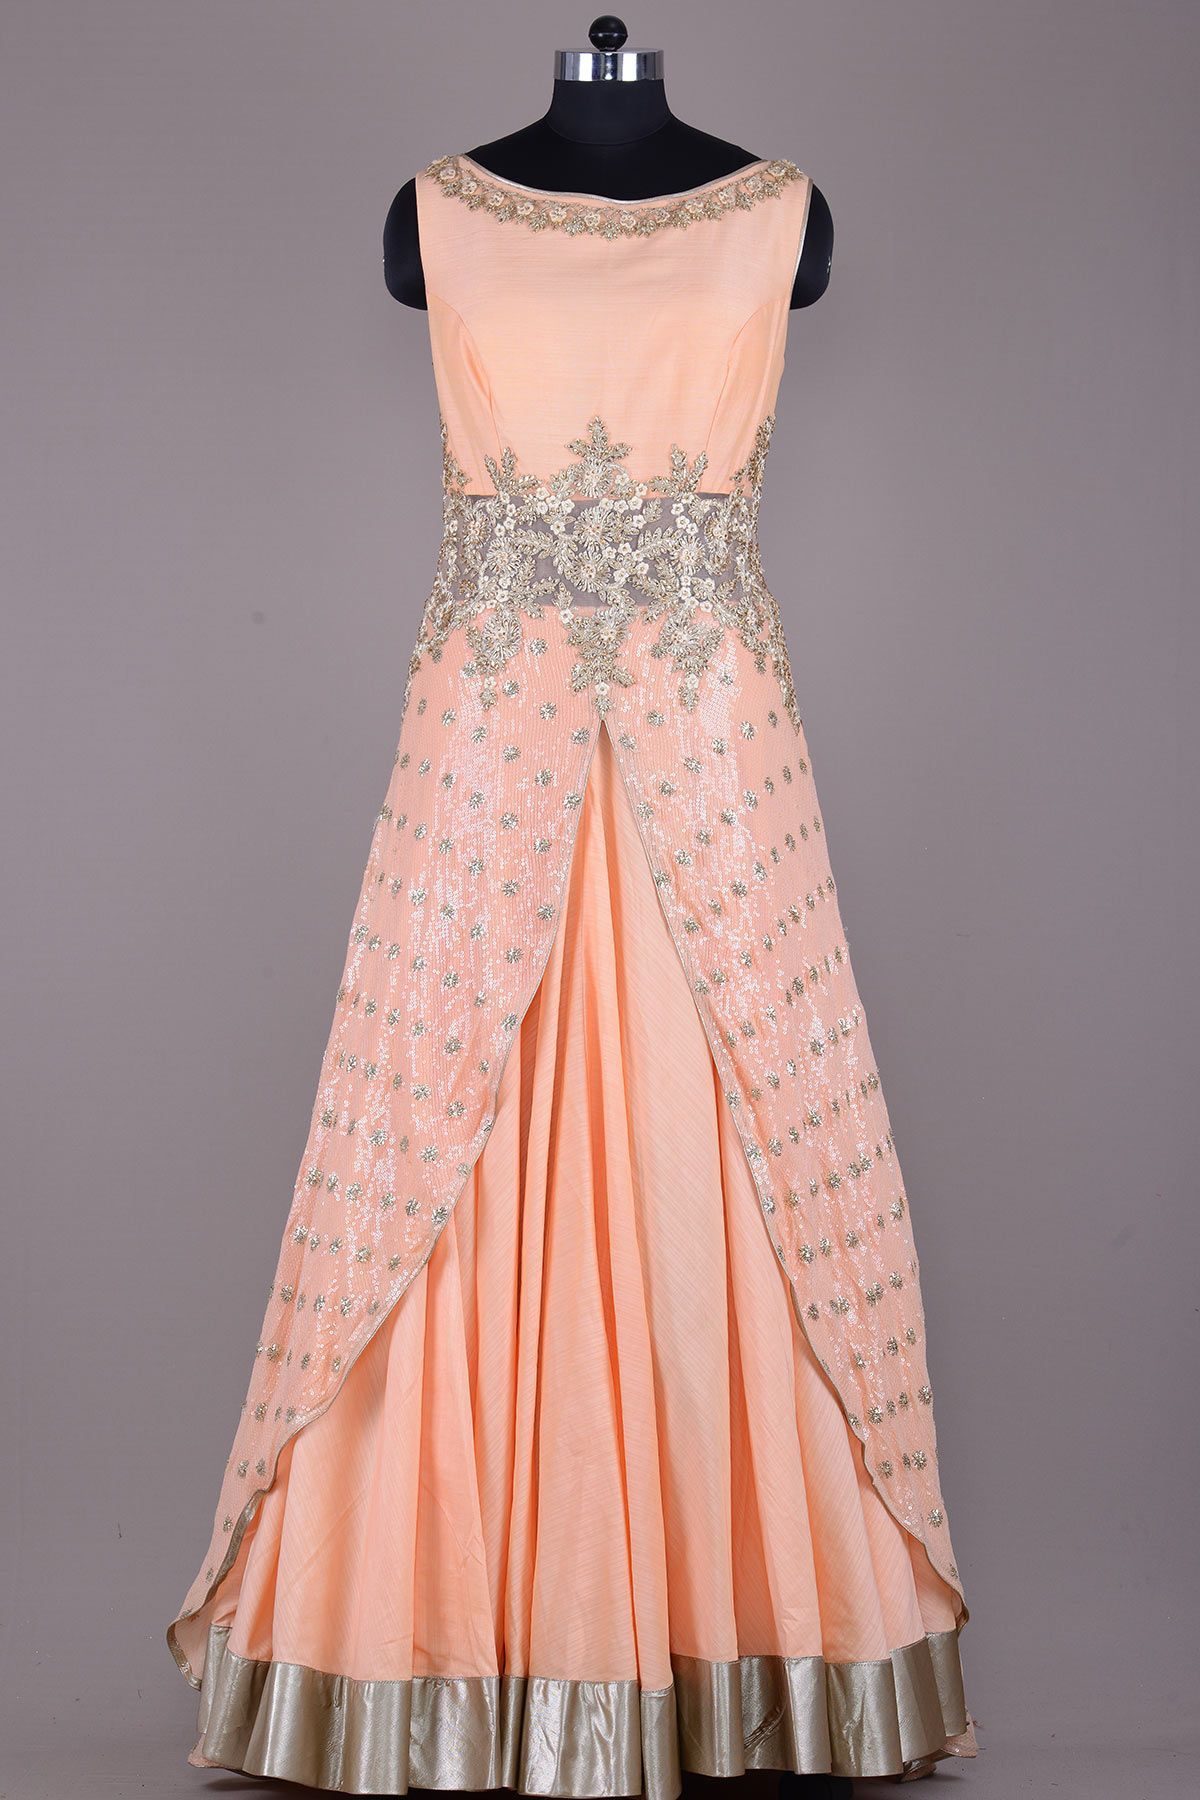 f8bfe28a7ac Buy Light Orange Zari Embroidered Raw Silk Evening Gown Online Evening  Gowns Online